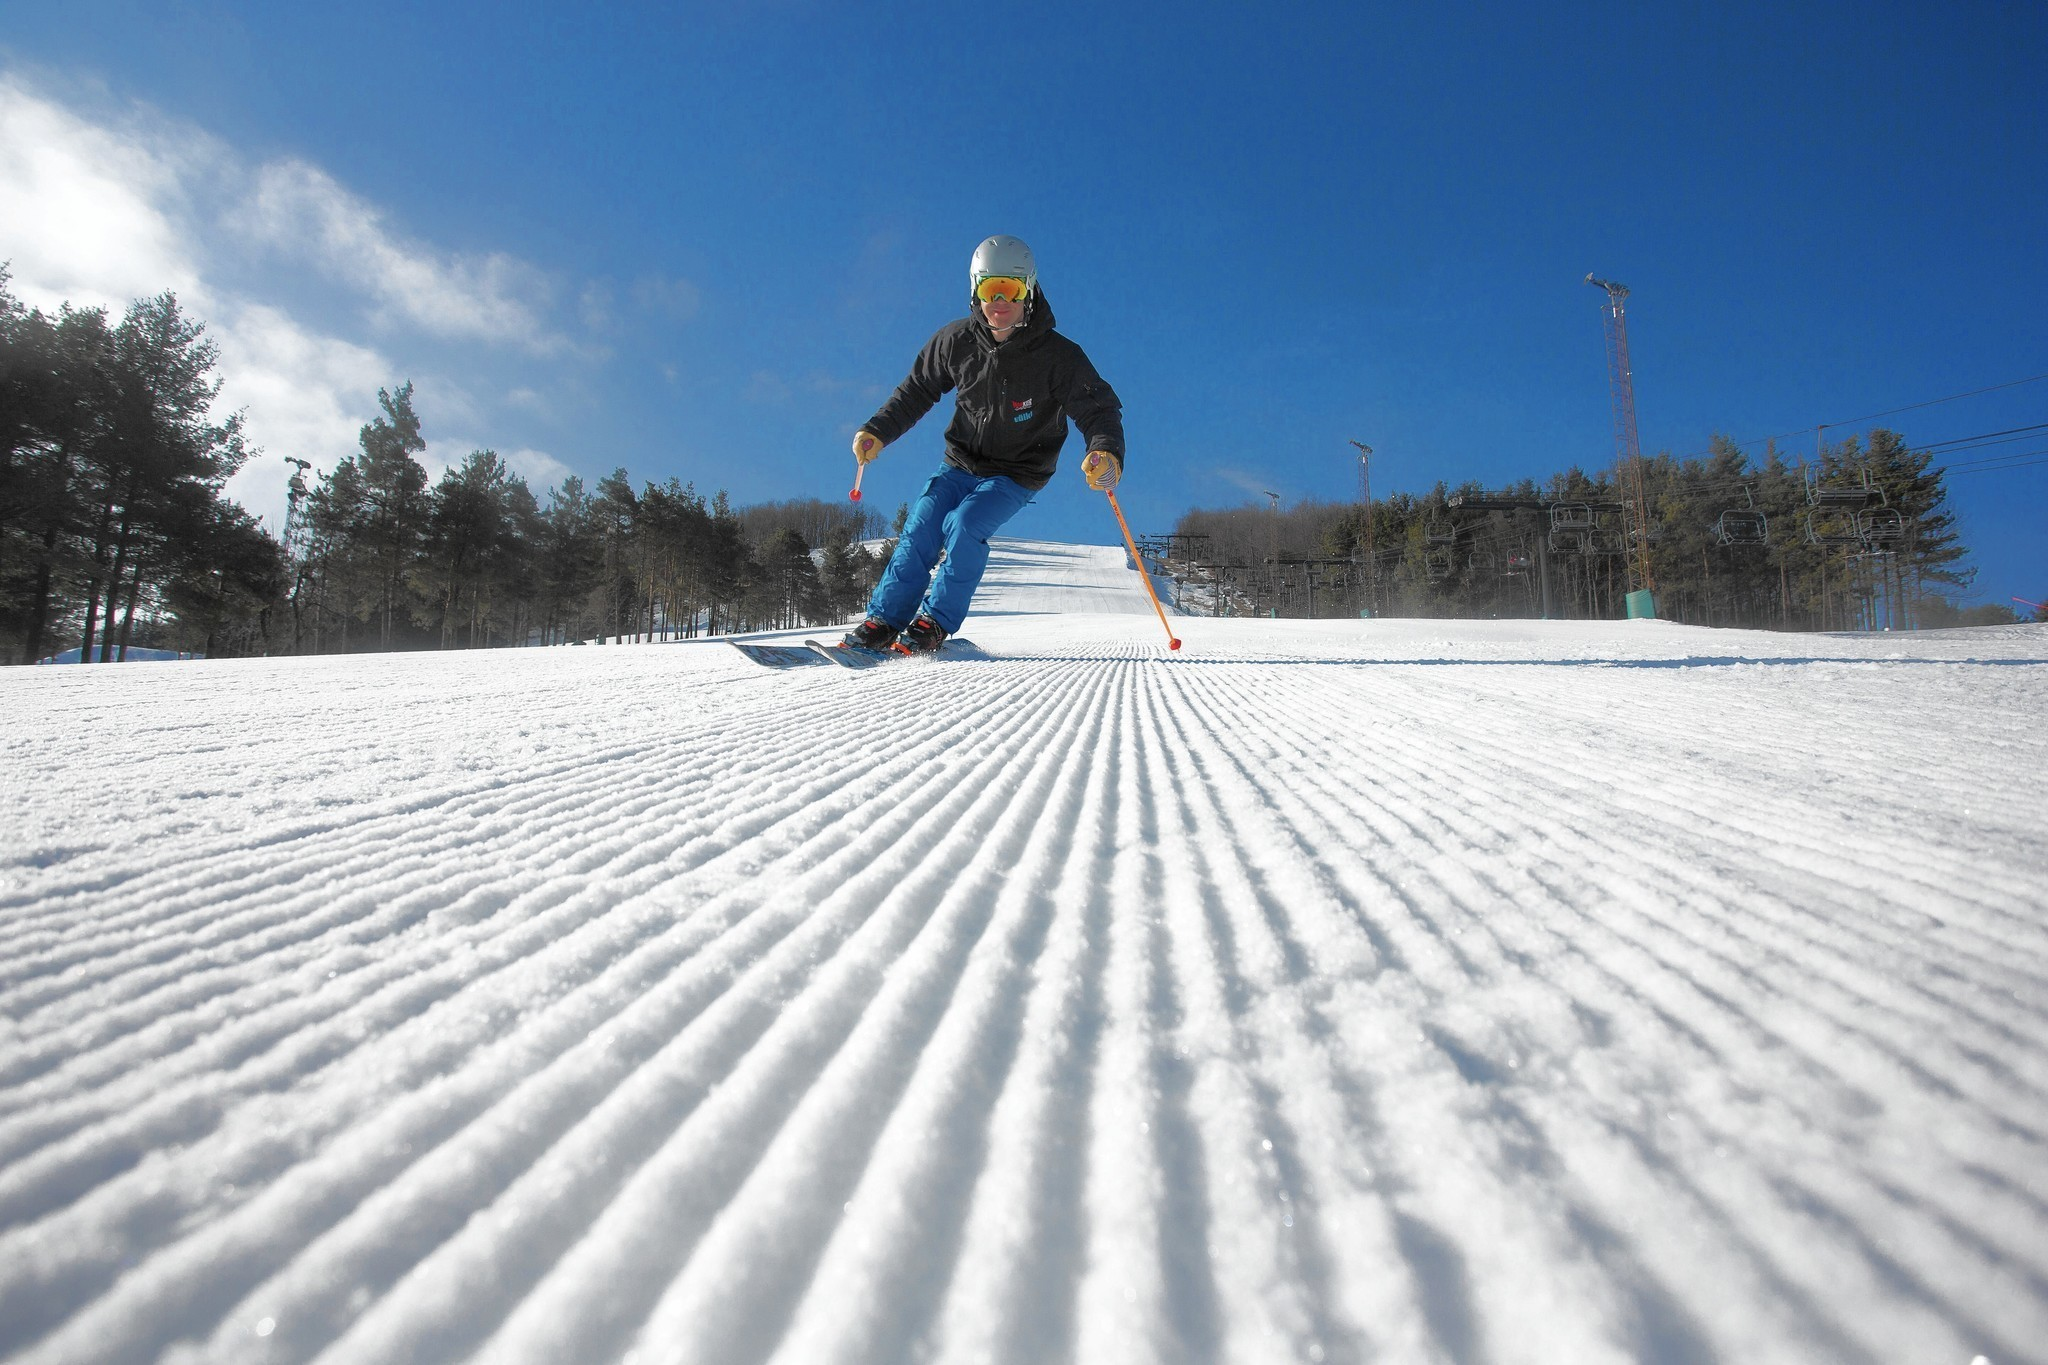 Ski resorts within driving distance of baltimore for Resorts driving distance from nyc